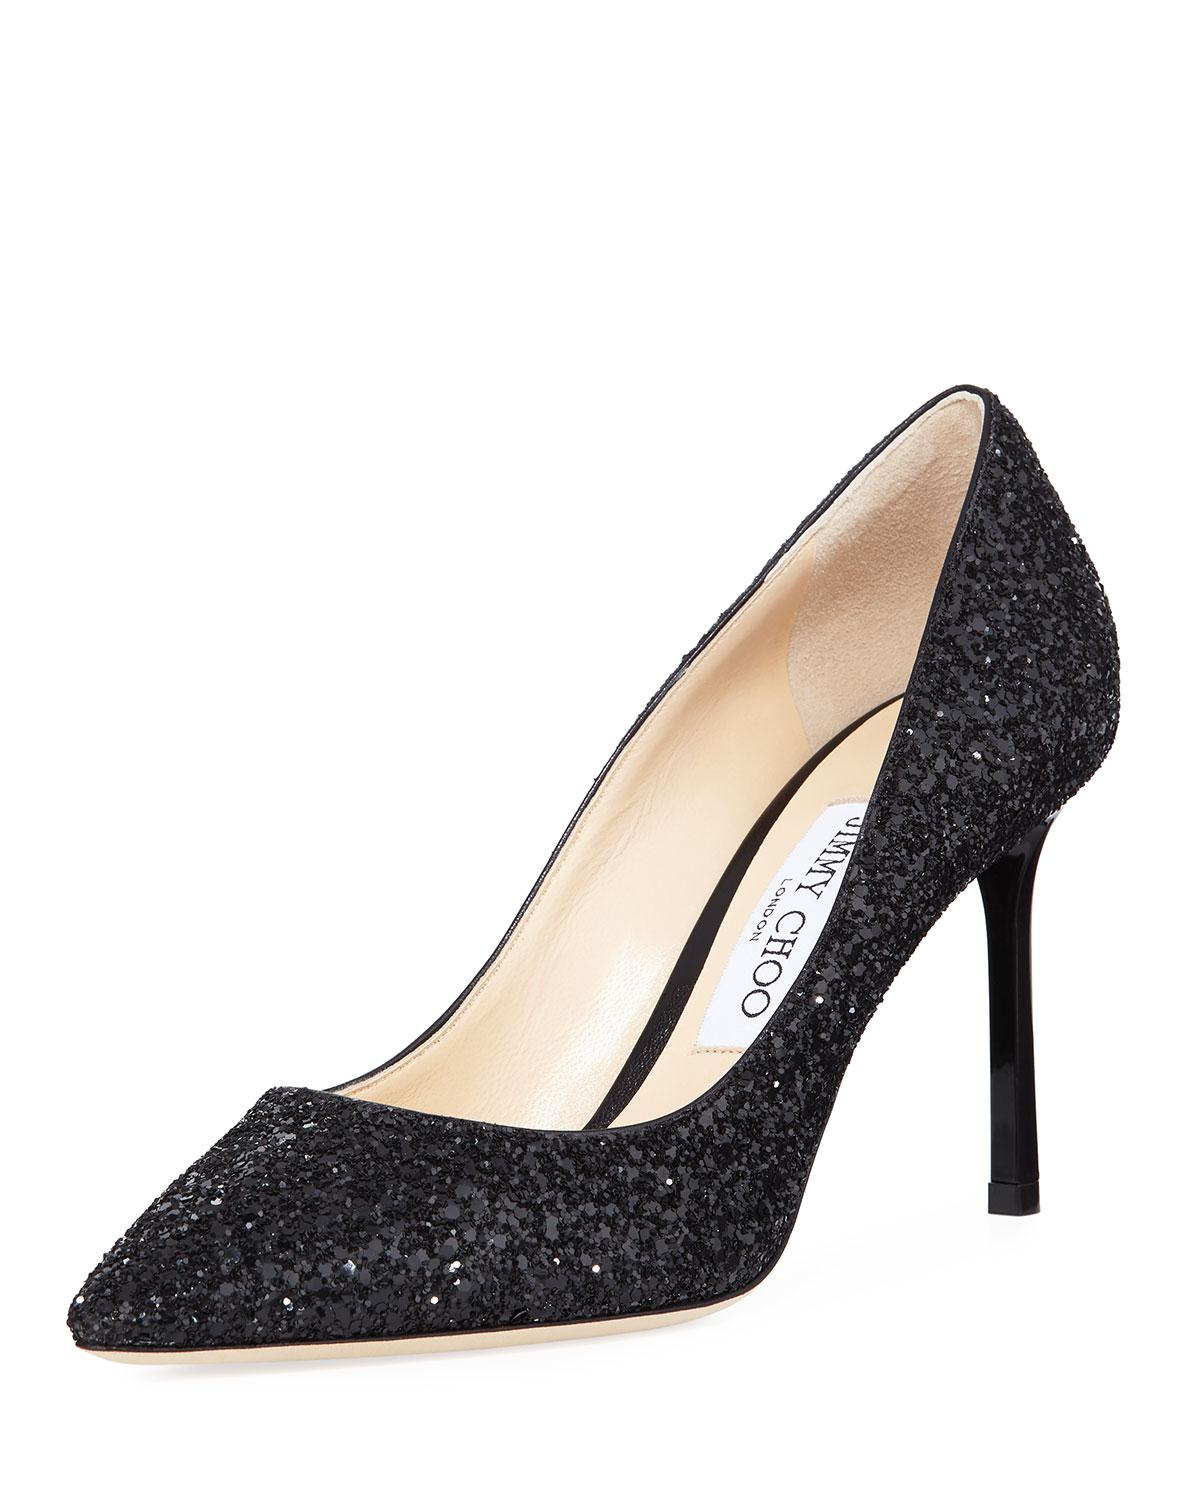 7e759f1d53d9 Gallery. Previously sold at  Bergdorf Goodman · Women s Jimmy Choo Glitter  ...